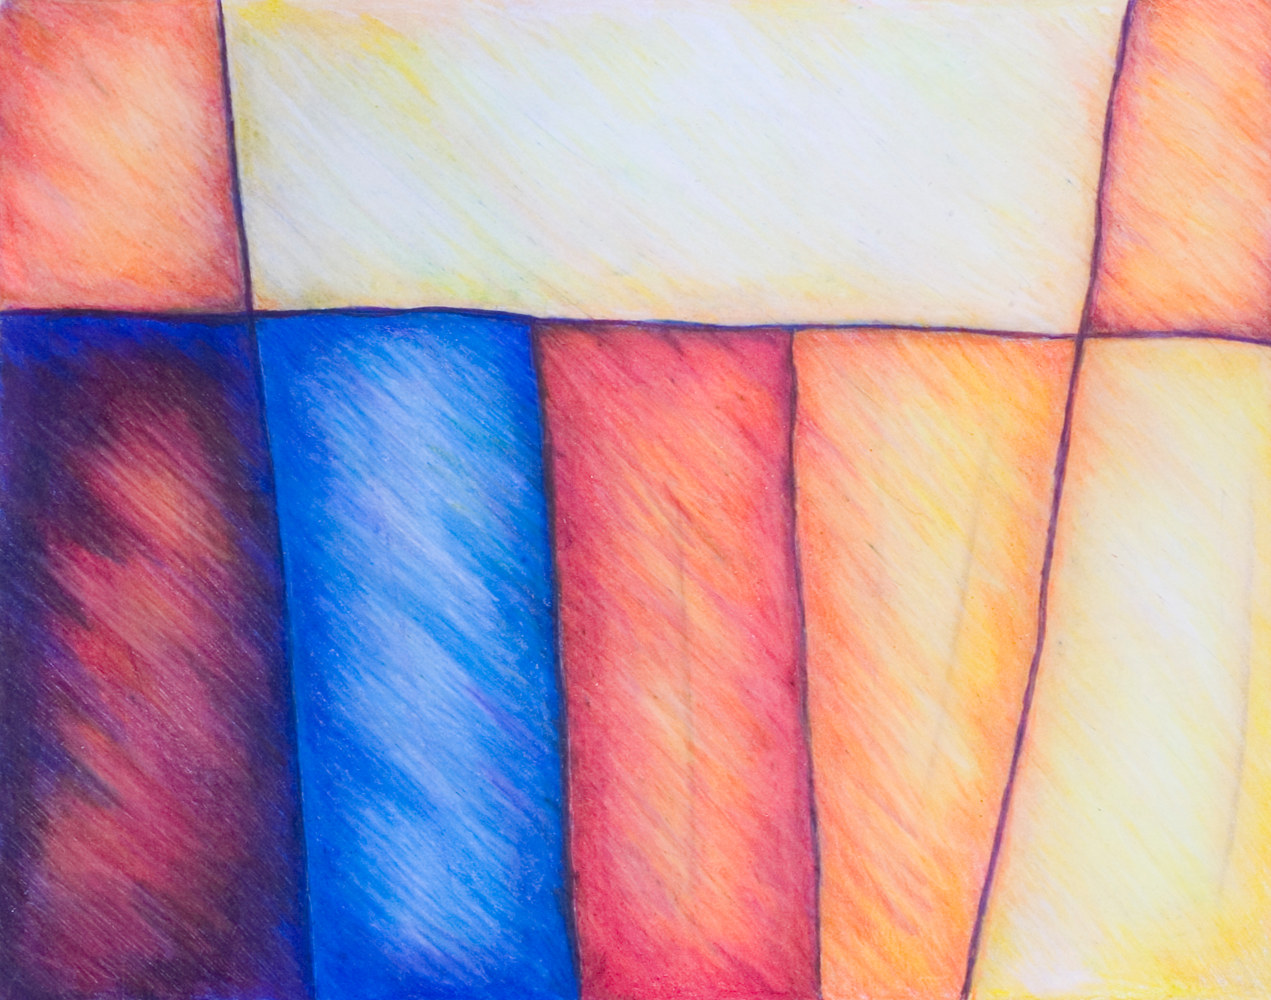 Watercolor Color Block by Danielle Scott